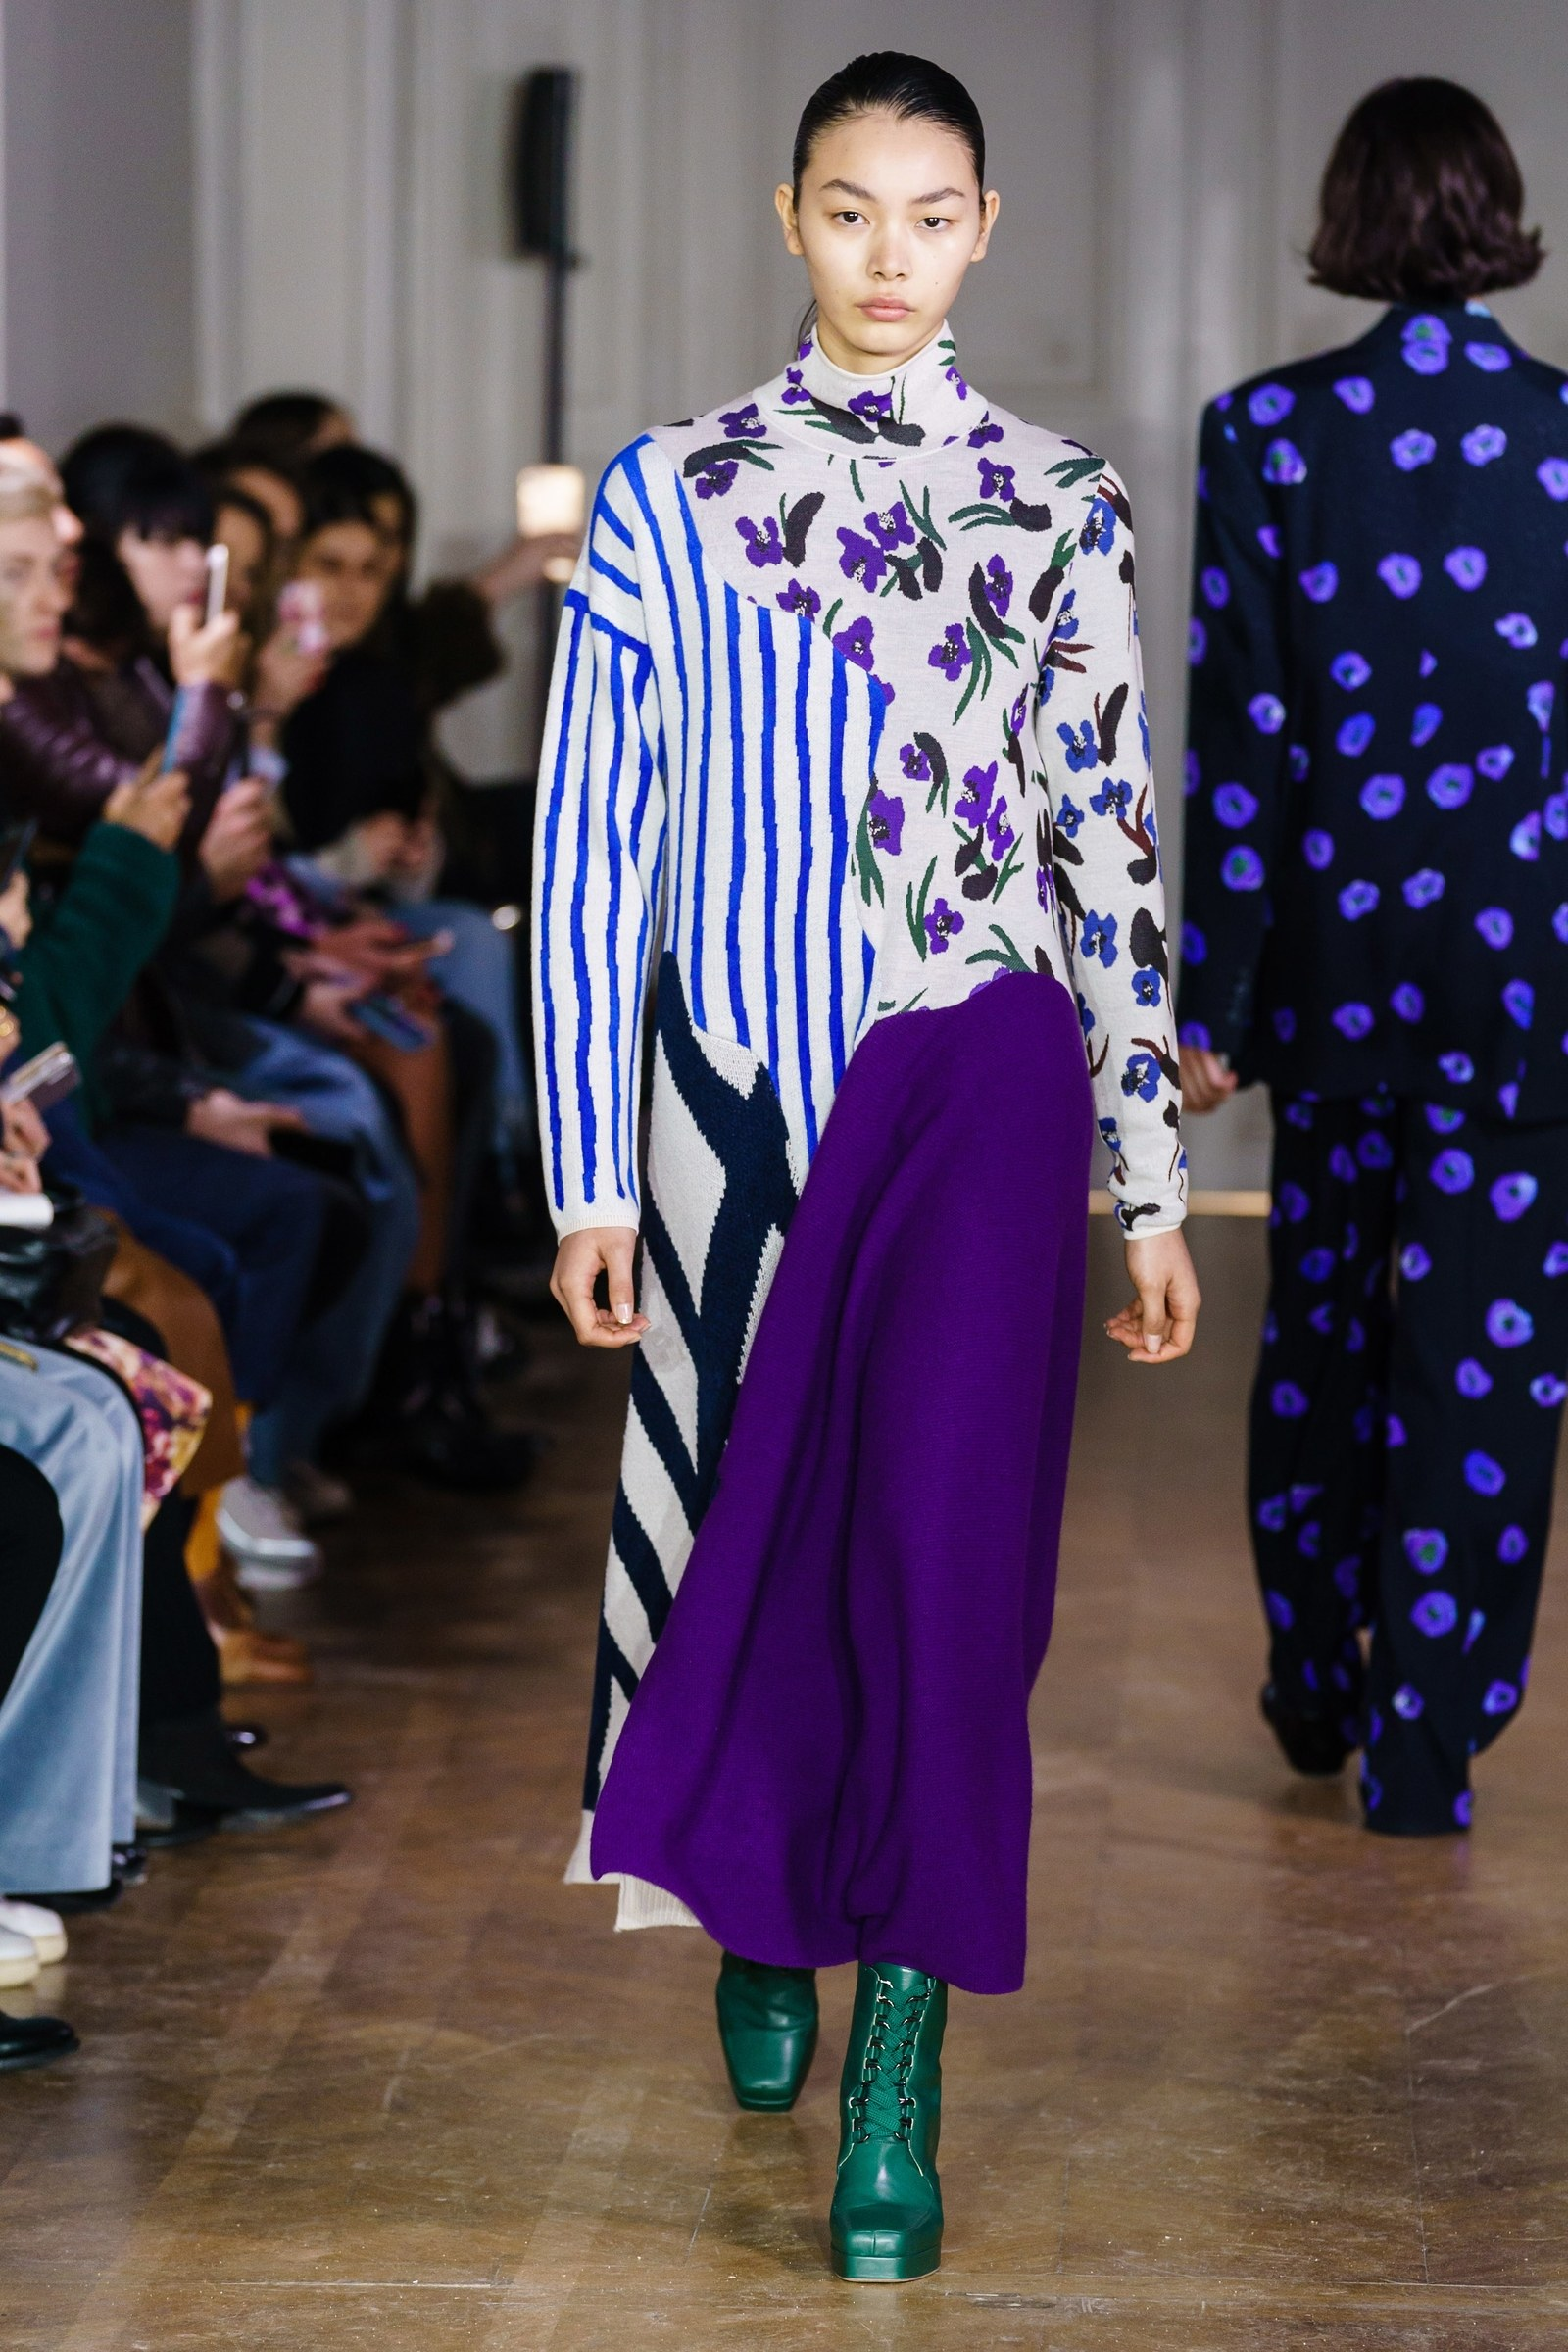 Trends, highlights and moments from Paris Fashion Week Fall/Winter 2019. Everything you need to know now!